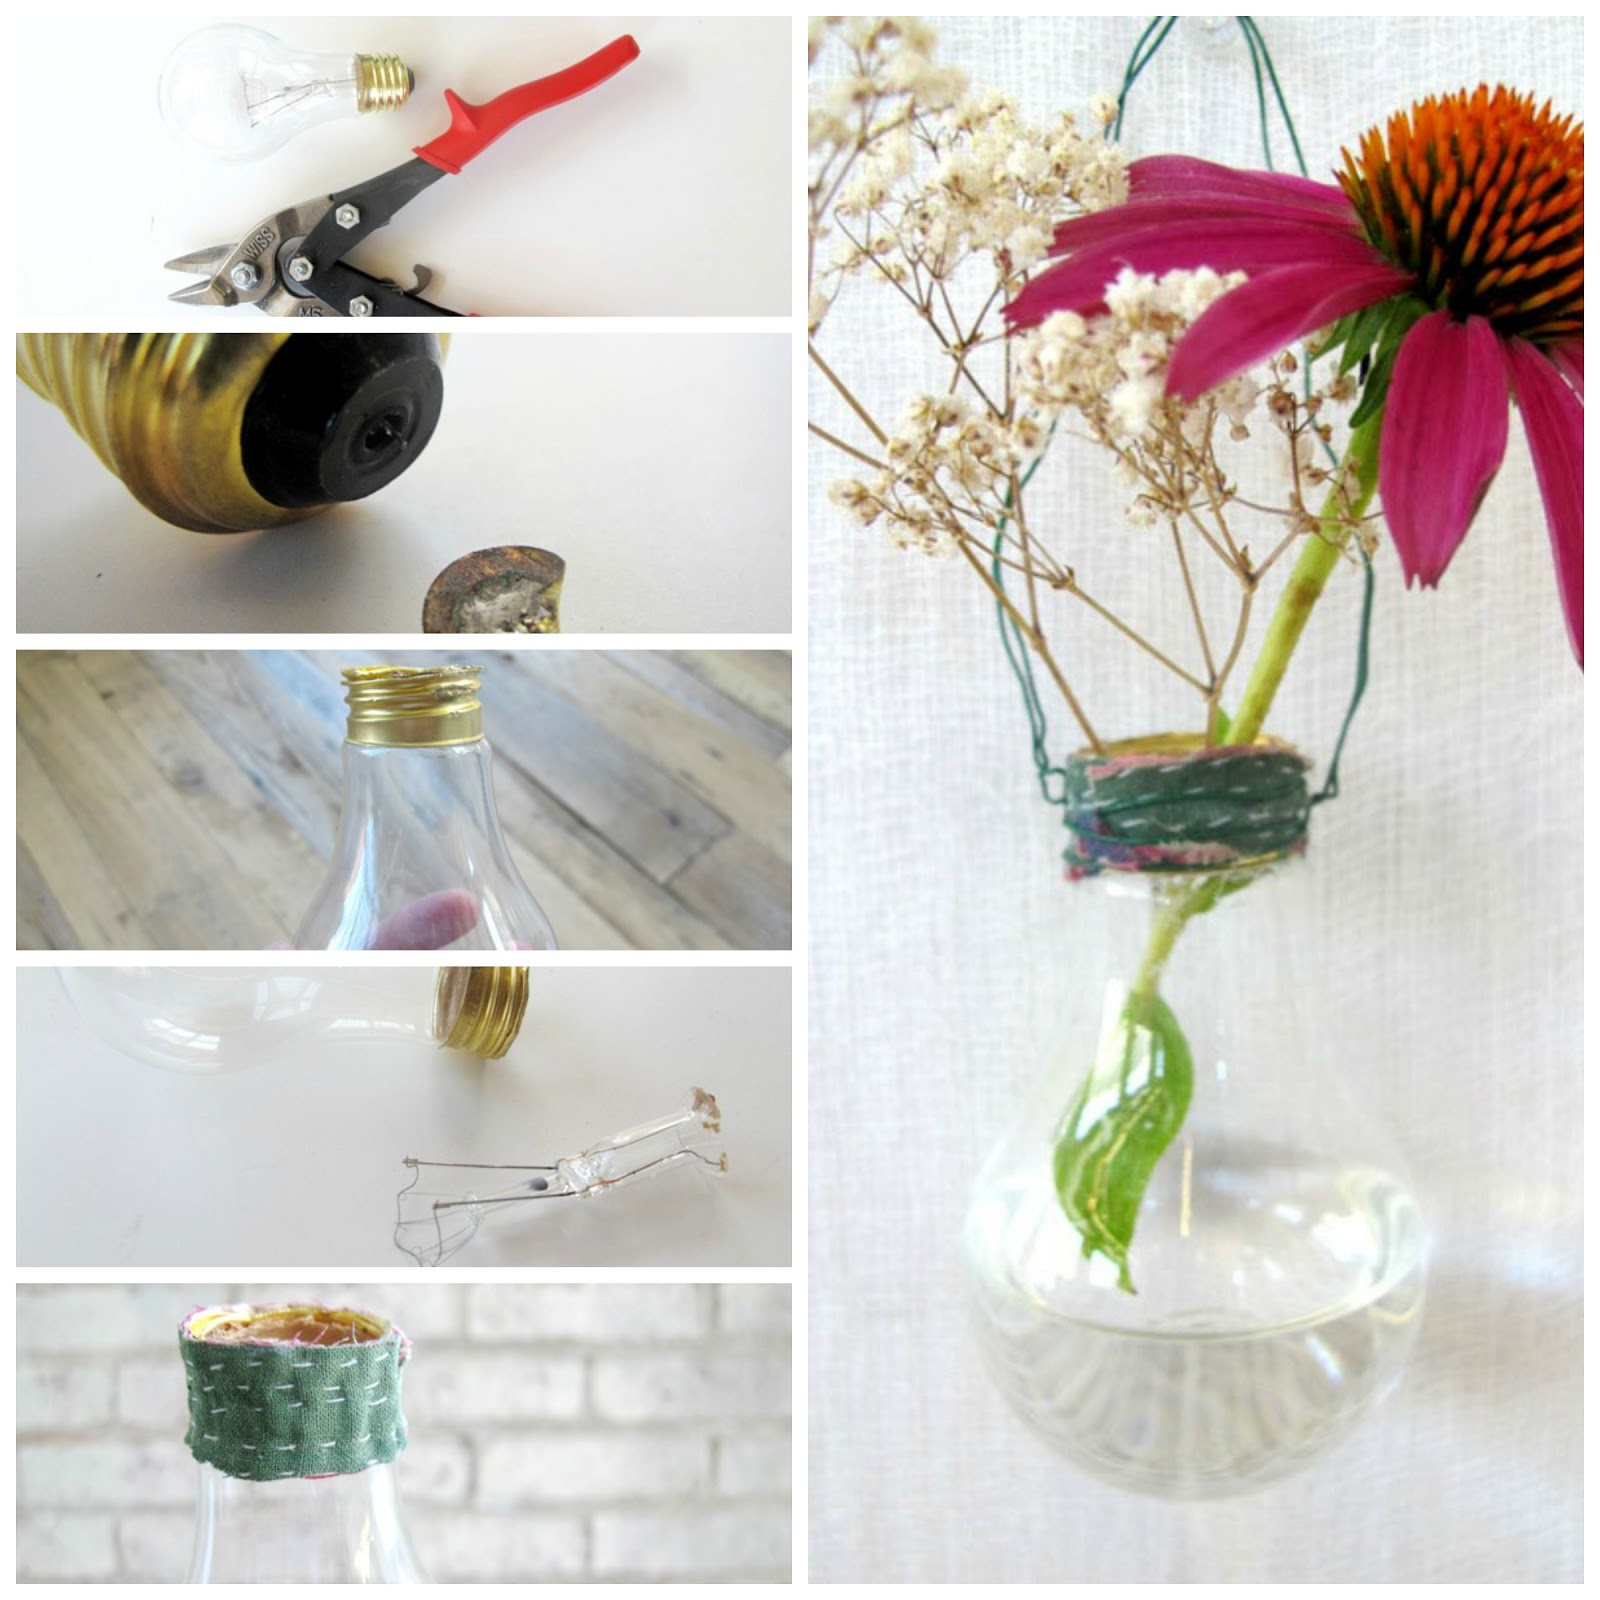 diy upcycled light bulb vase home decor